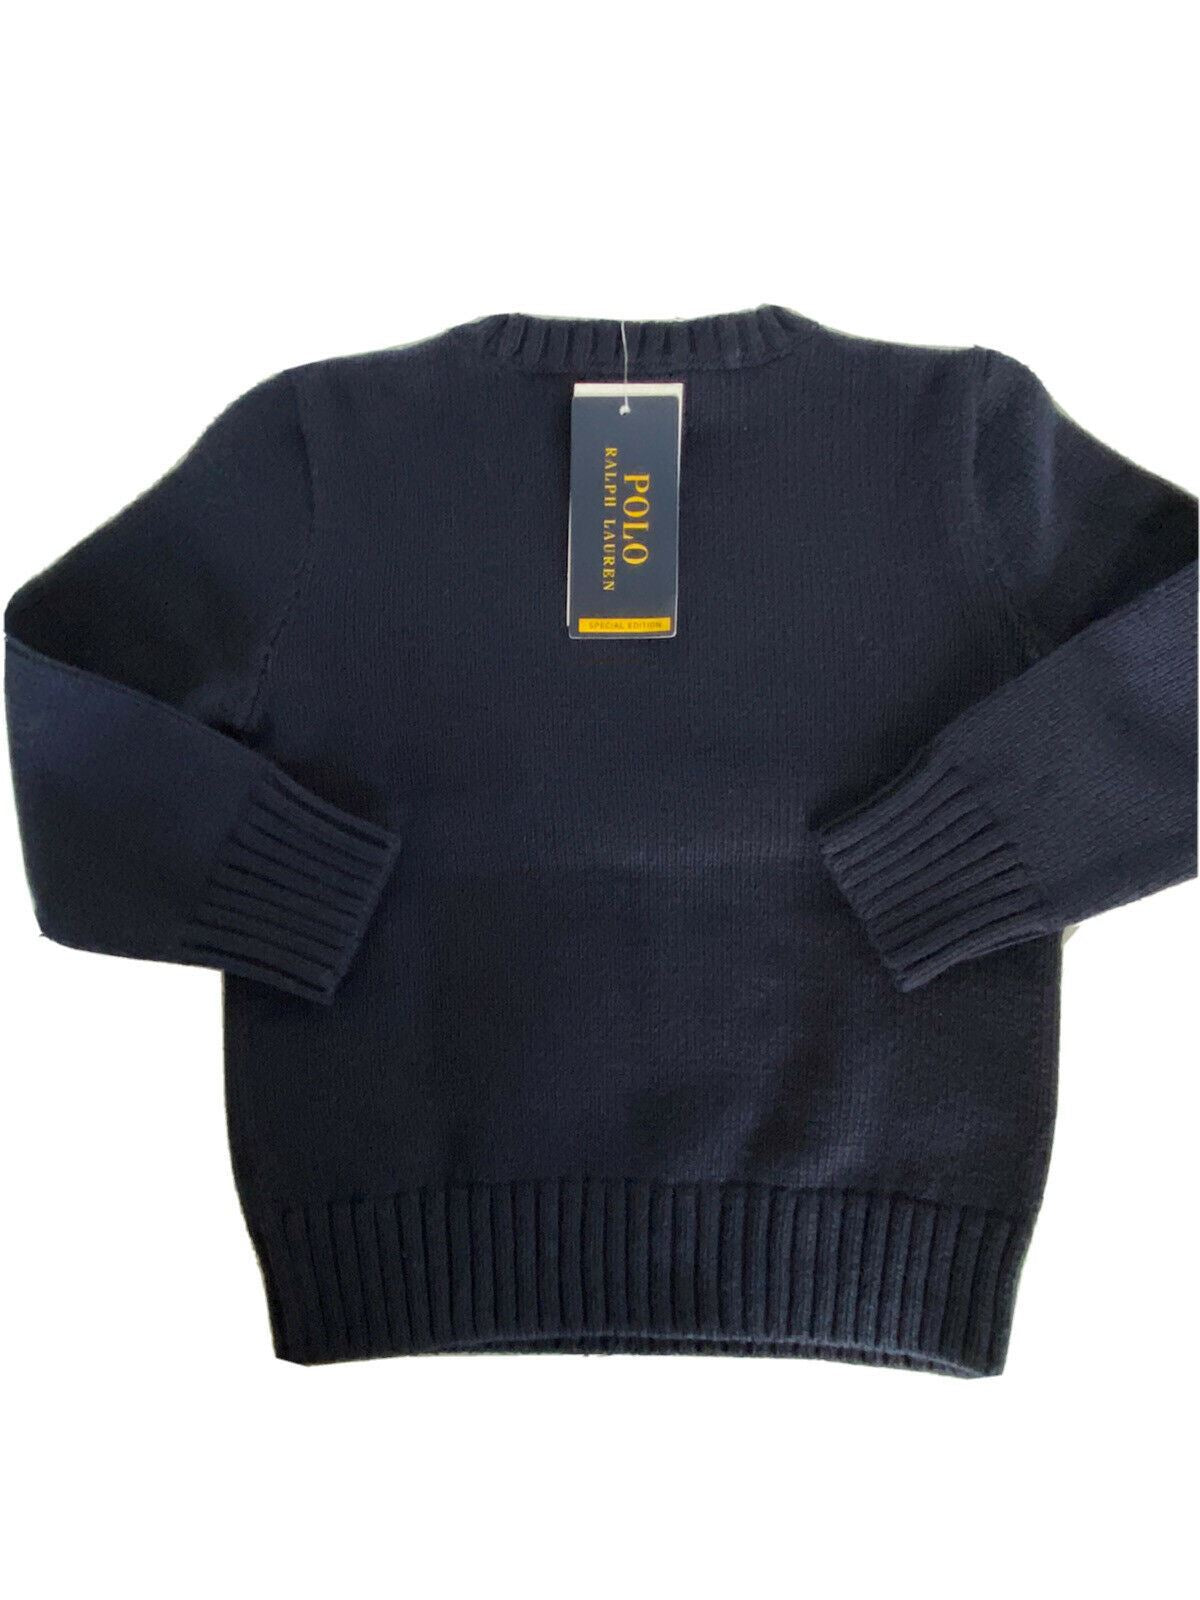 NWT $95 Polo Ralph Lauren Boys Bear Blue Cotton Sweater Size 4T